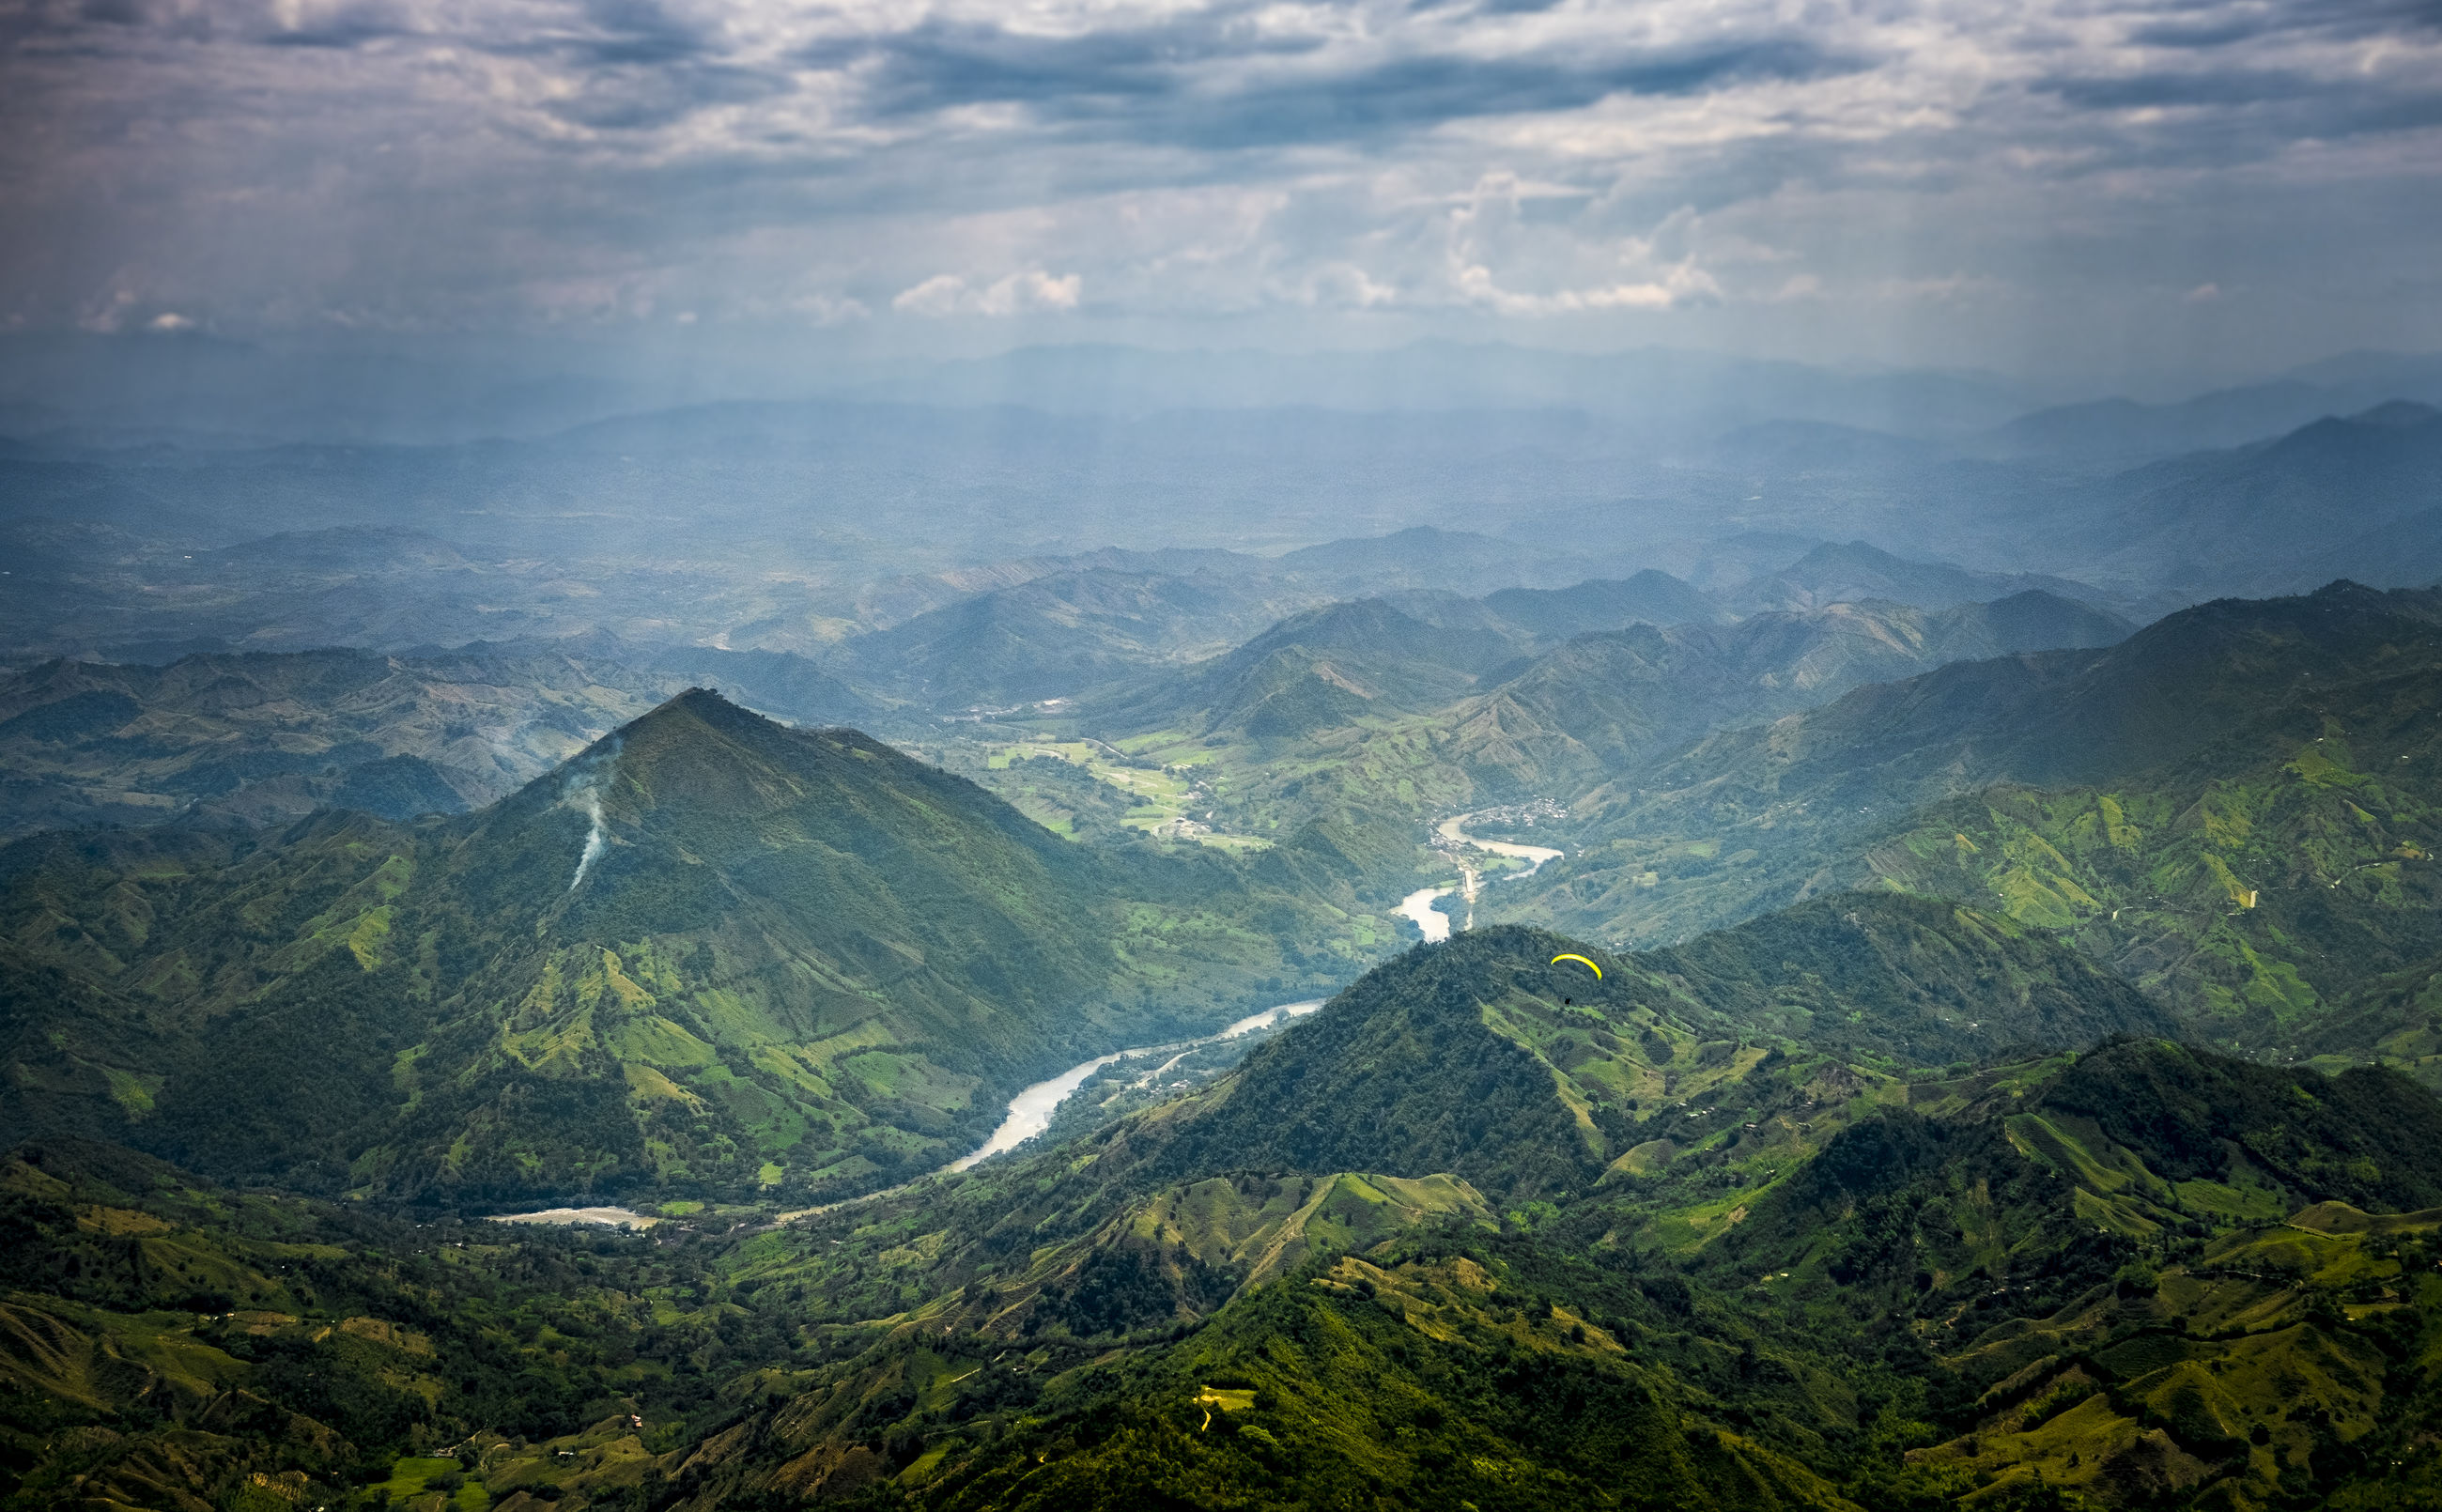 mountain, scenics - nature, beauty in nature, tranquil scene, environment, landscape, cloud - sky, mountain range, tranquility, non-urban scene, sky, no people, nature, idyllic, aerial view, day, remote, physical geography, geology, outdoors, mountain peak, mountain ridge